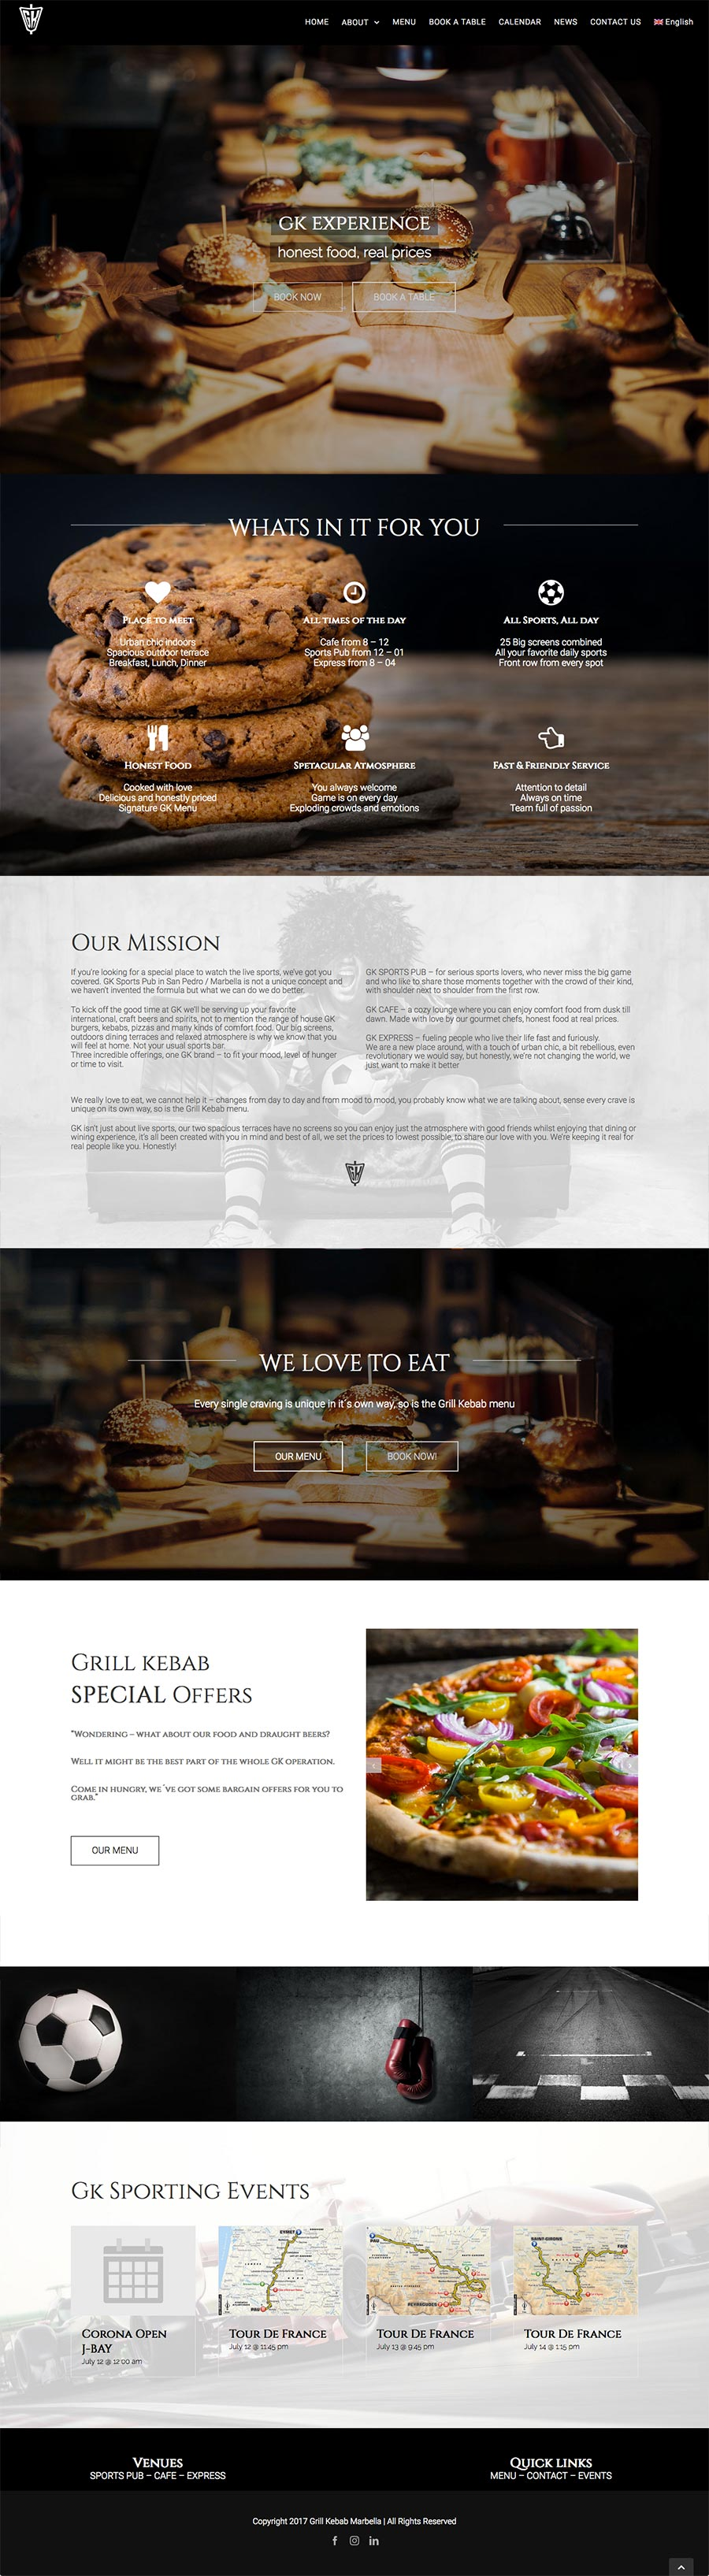 Restaurant website design web-site-design-gk-sports-pub-marbella